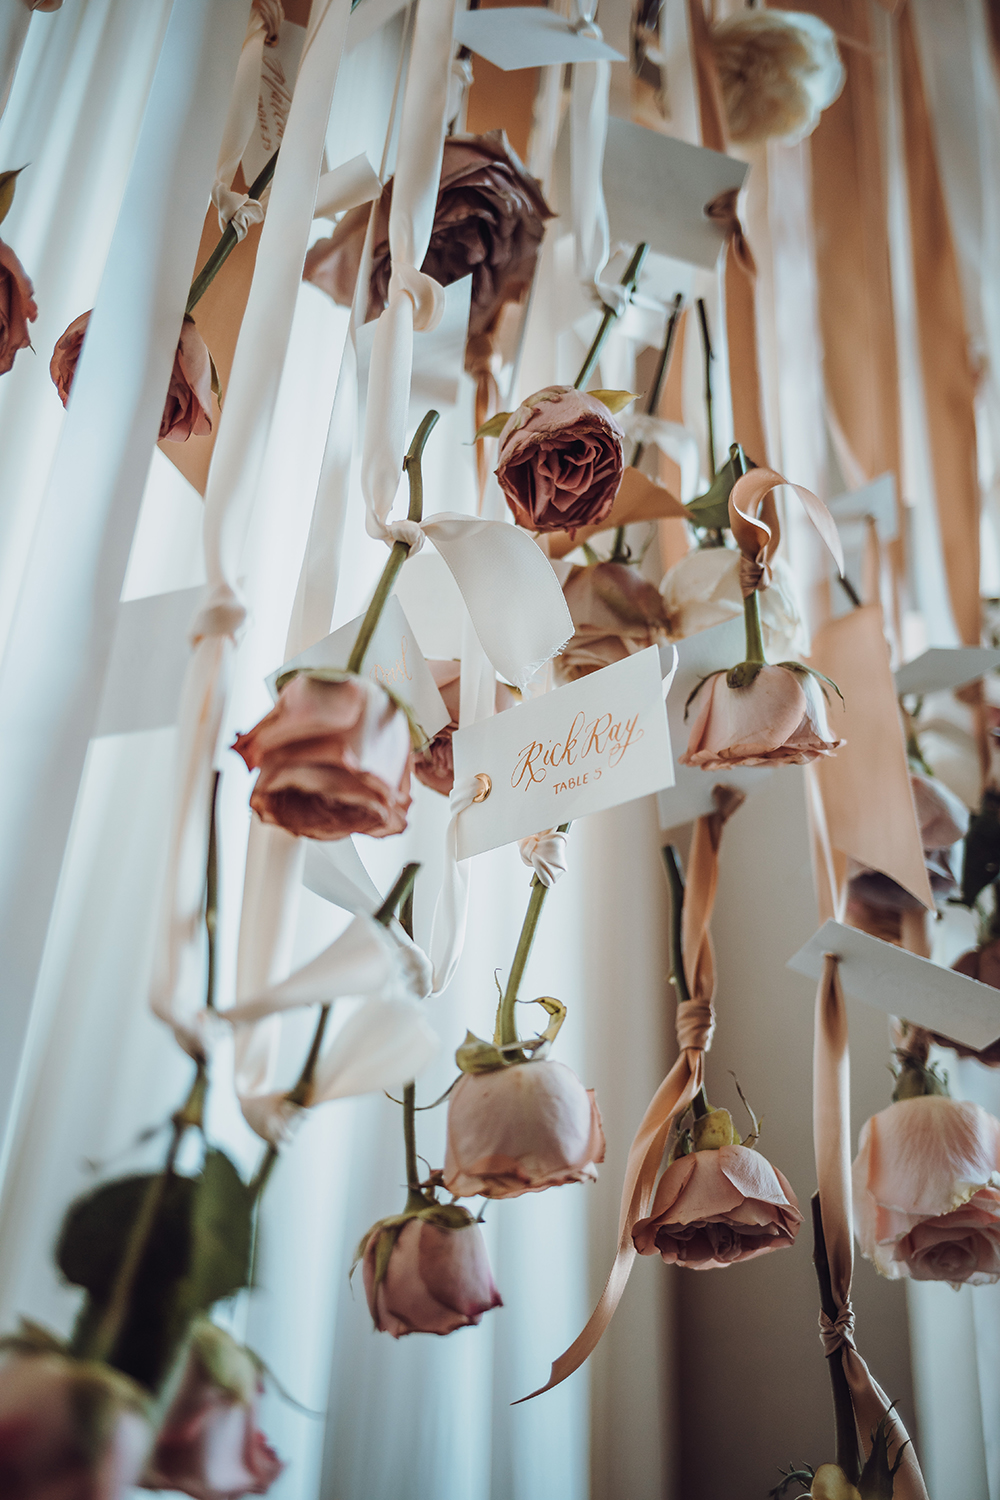 roses - seating chart - place cards